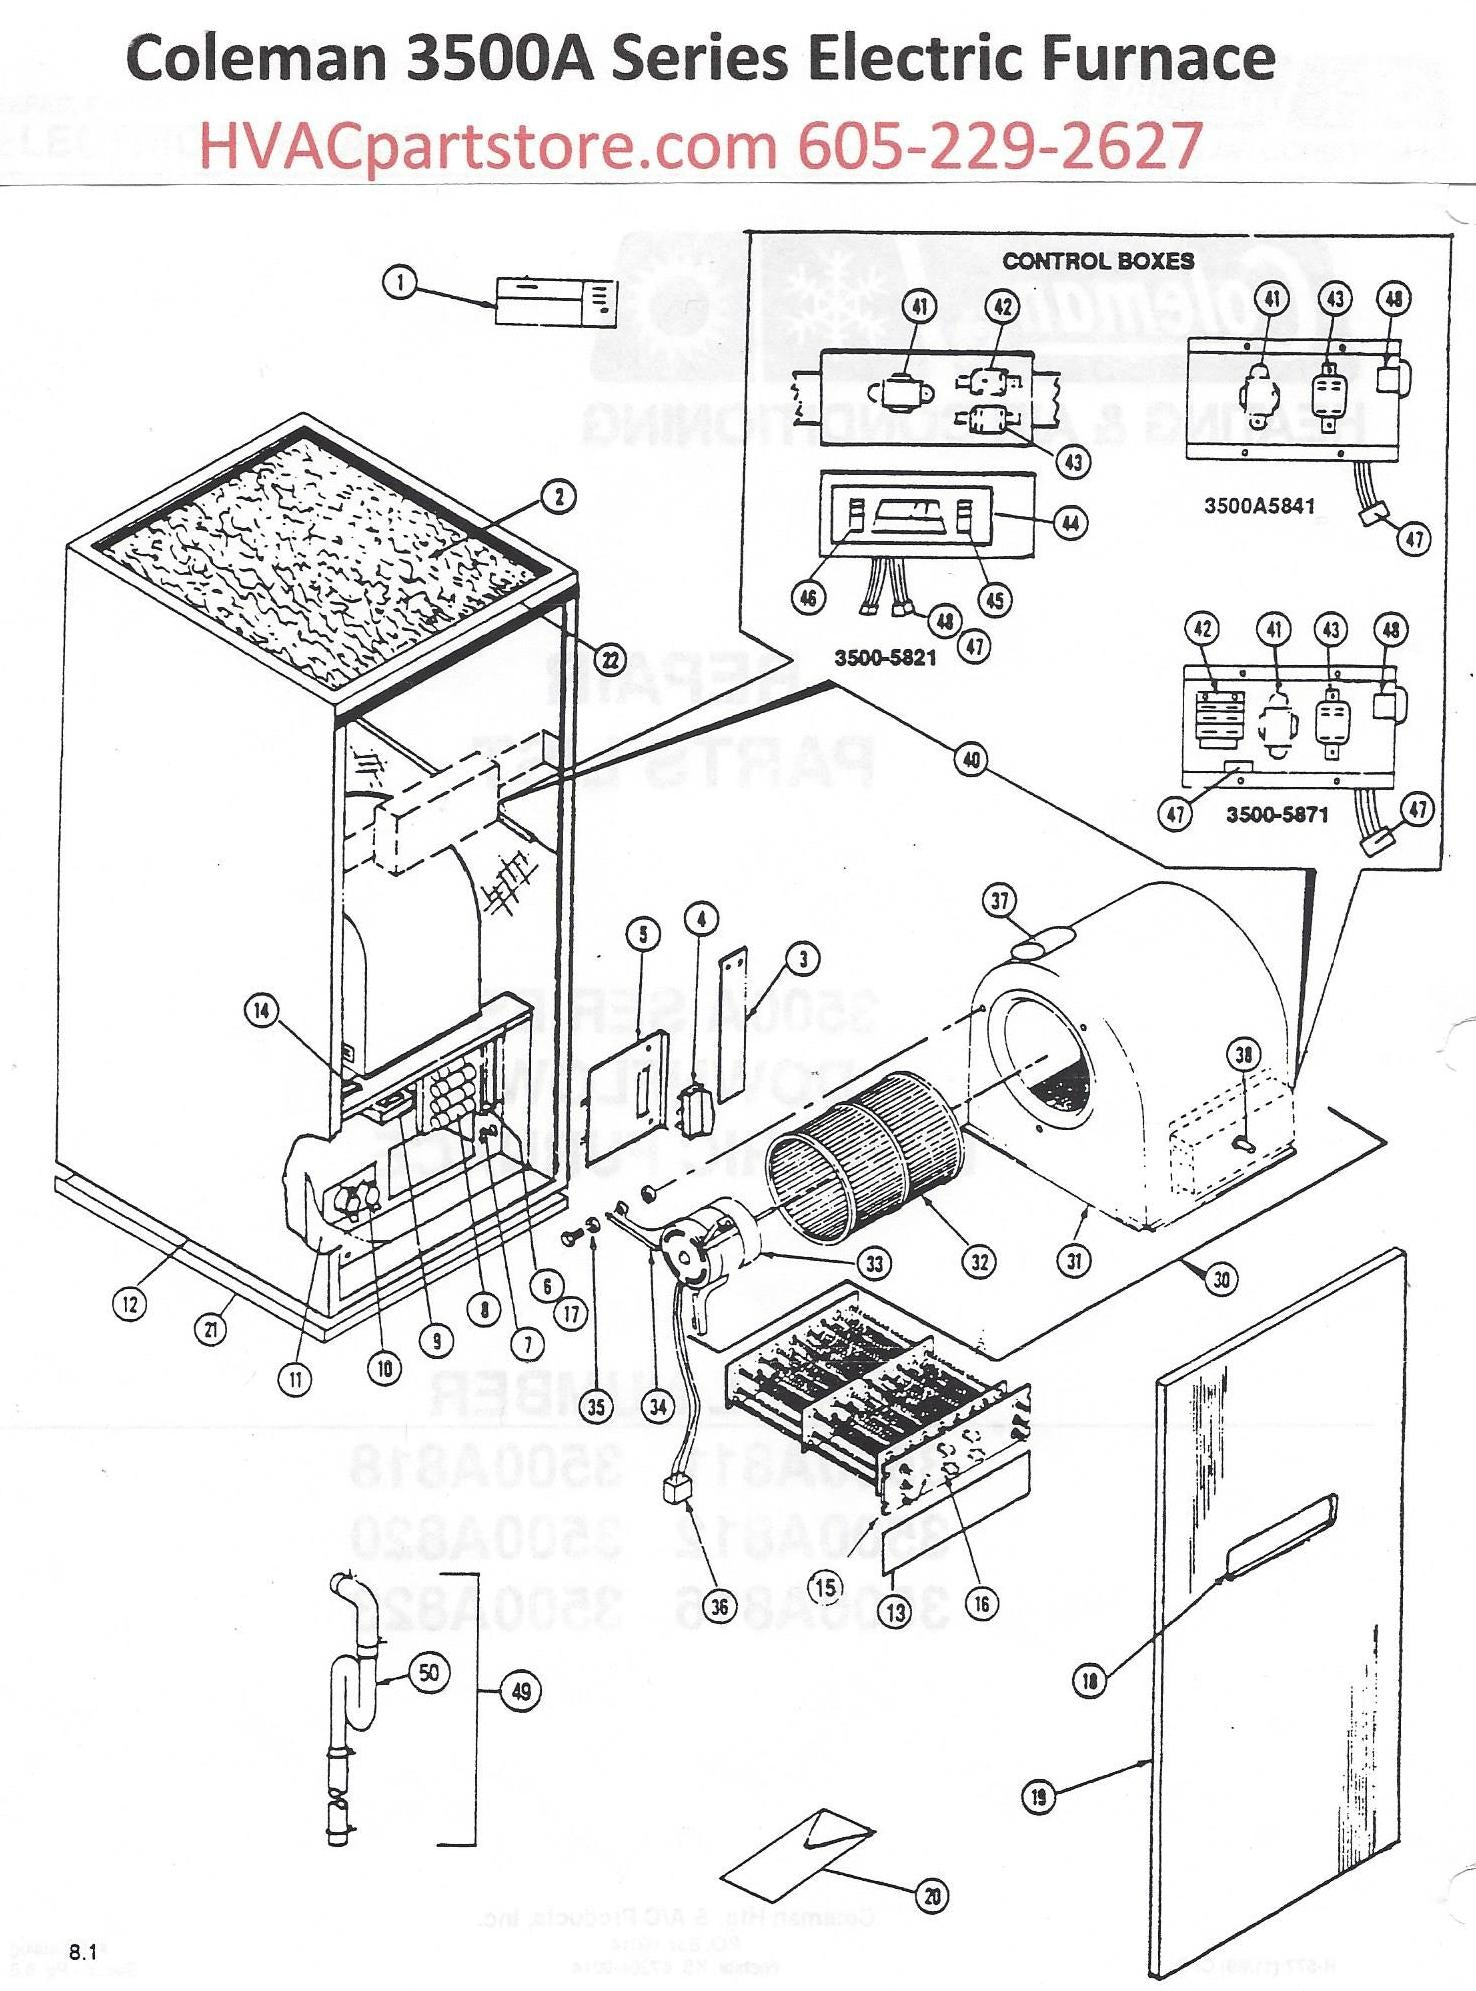 3500a818 coleman electric furnace parts hvacpartstore  wiring diagram electric furnaces coleman furnace #10